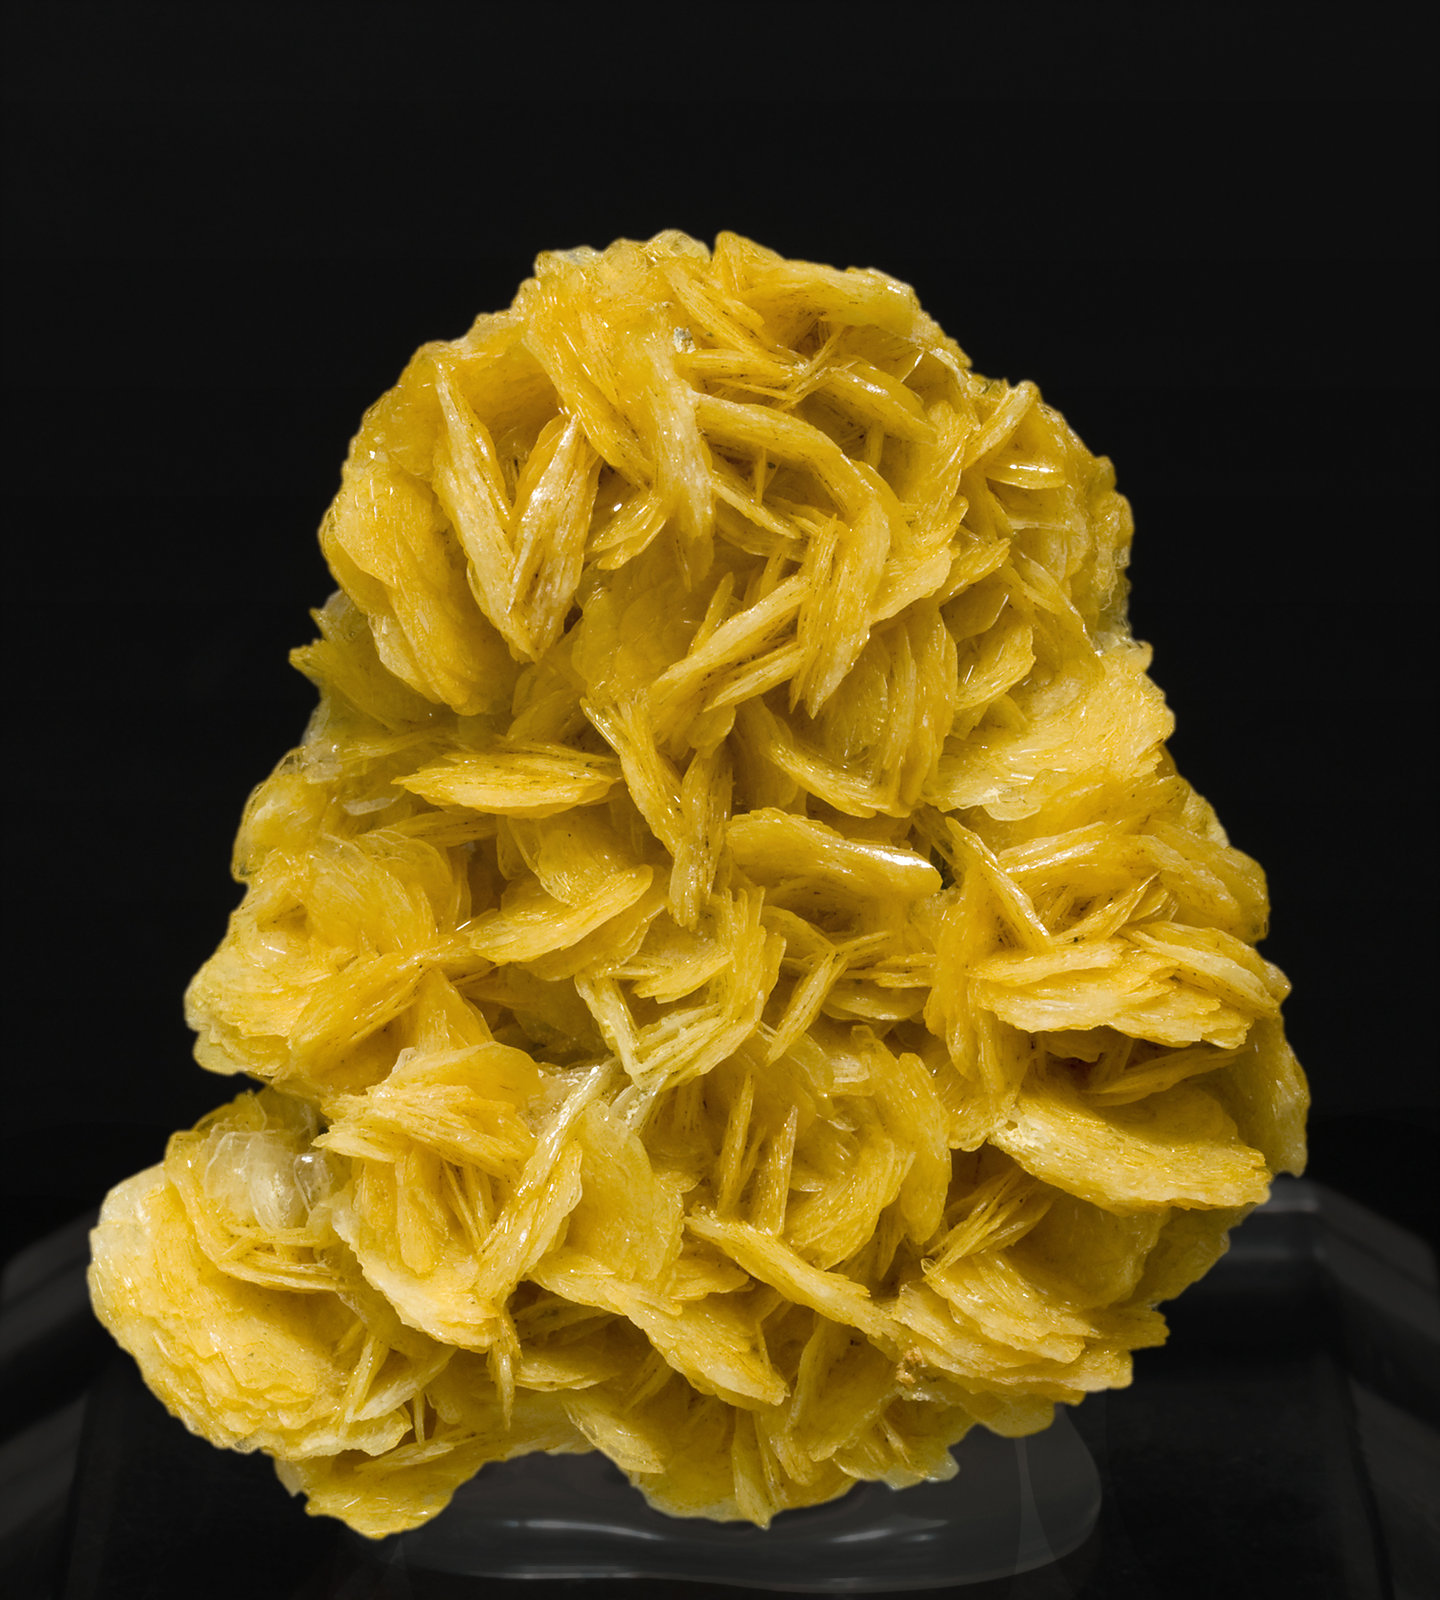 specimens/s_imagesS7/Wulfenite-MG96S7.jpg